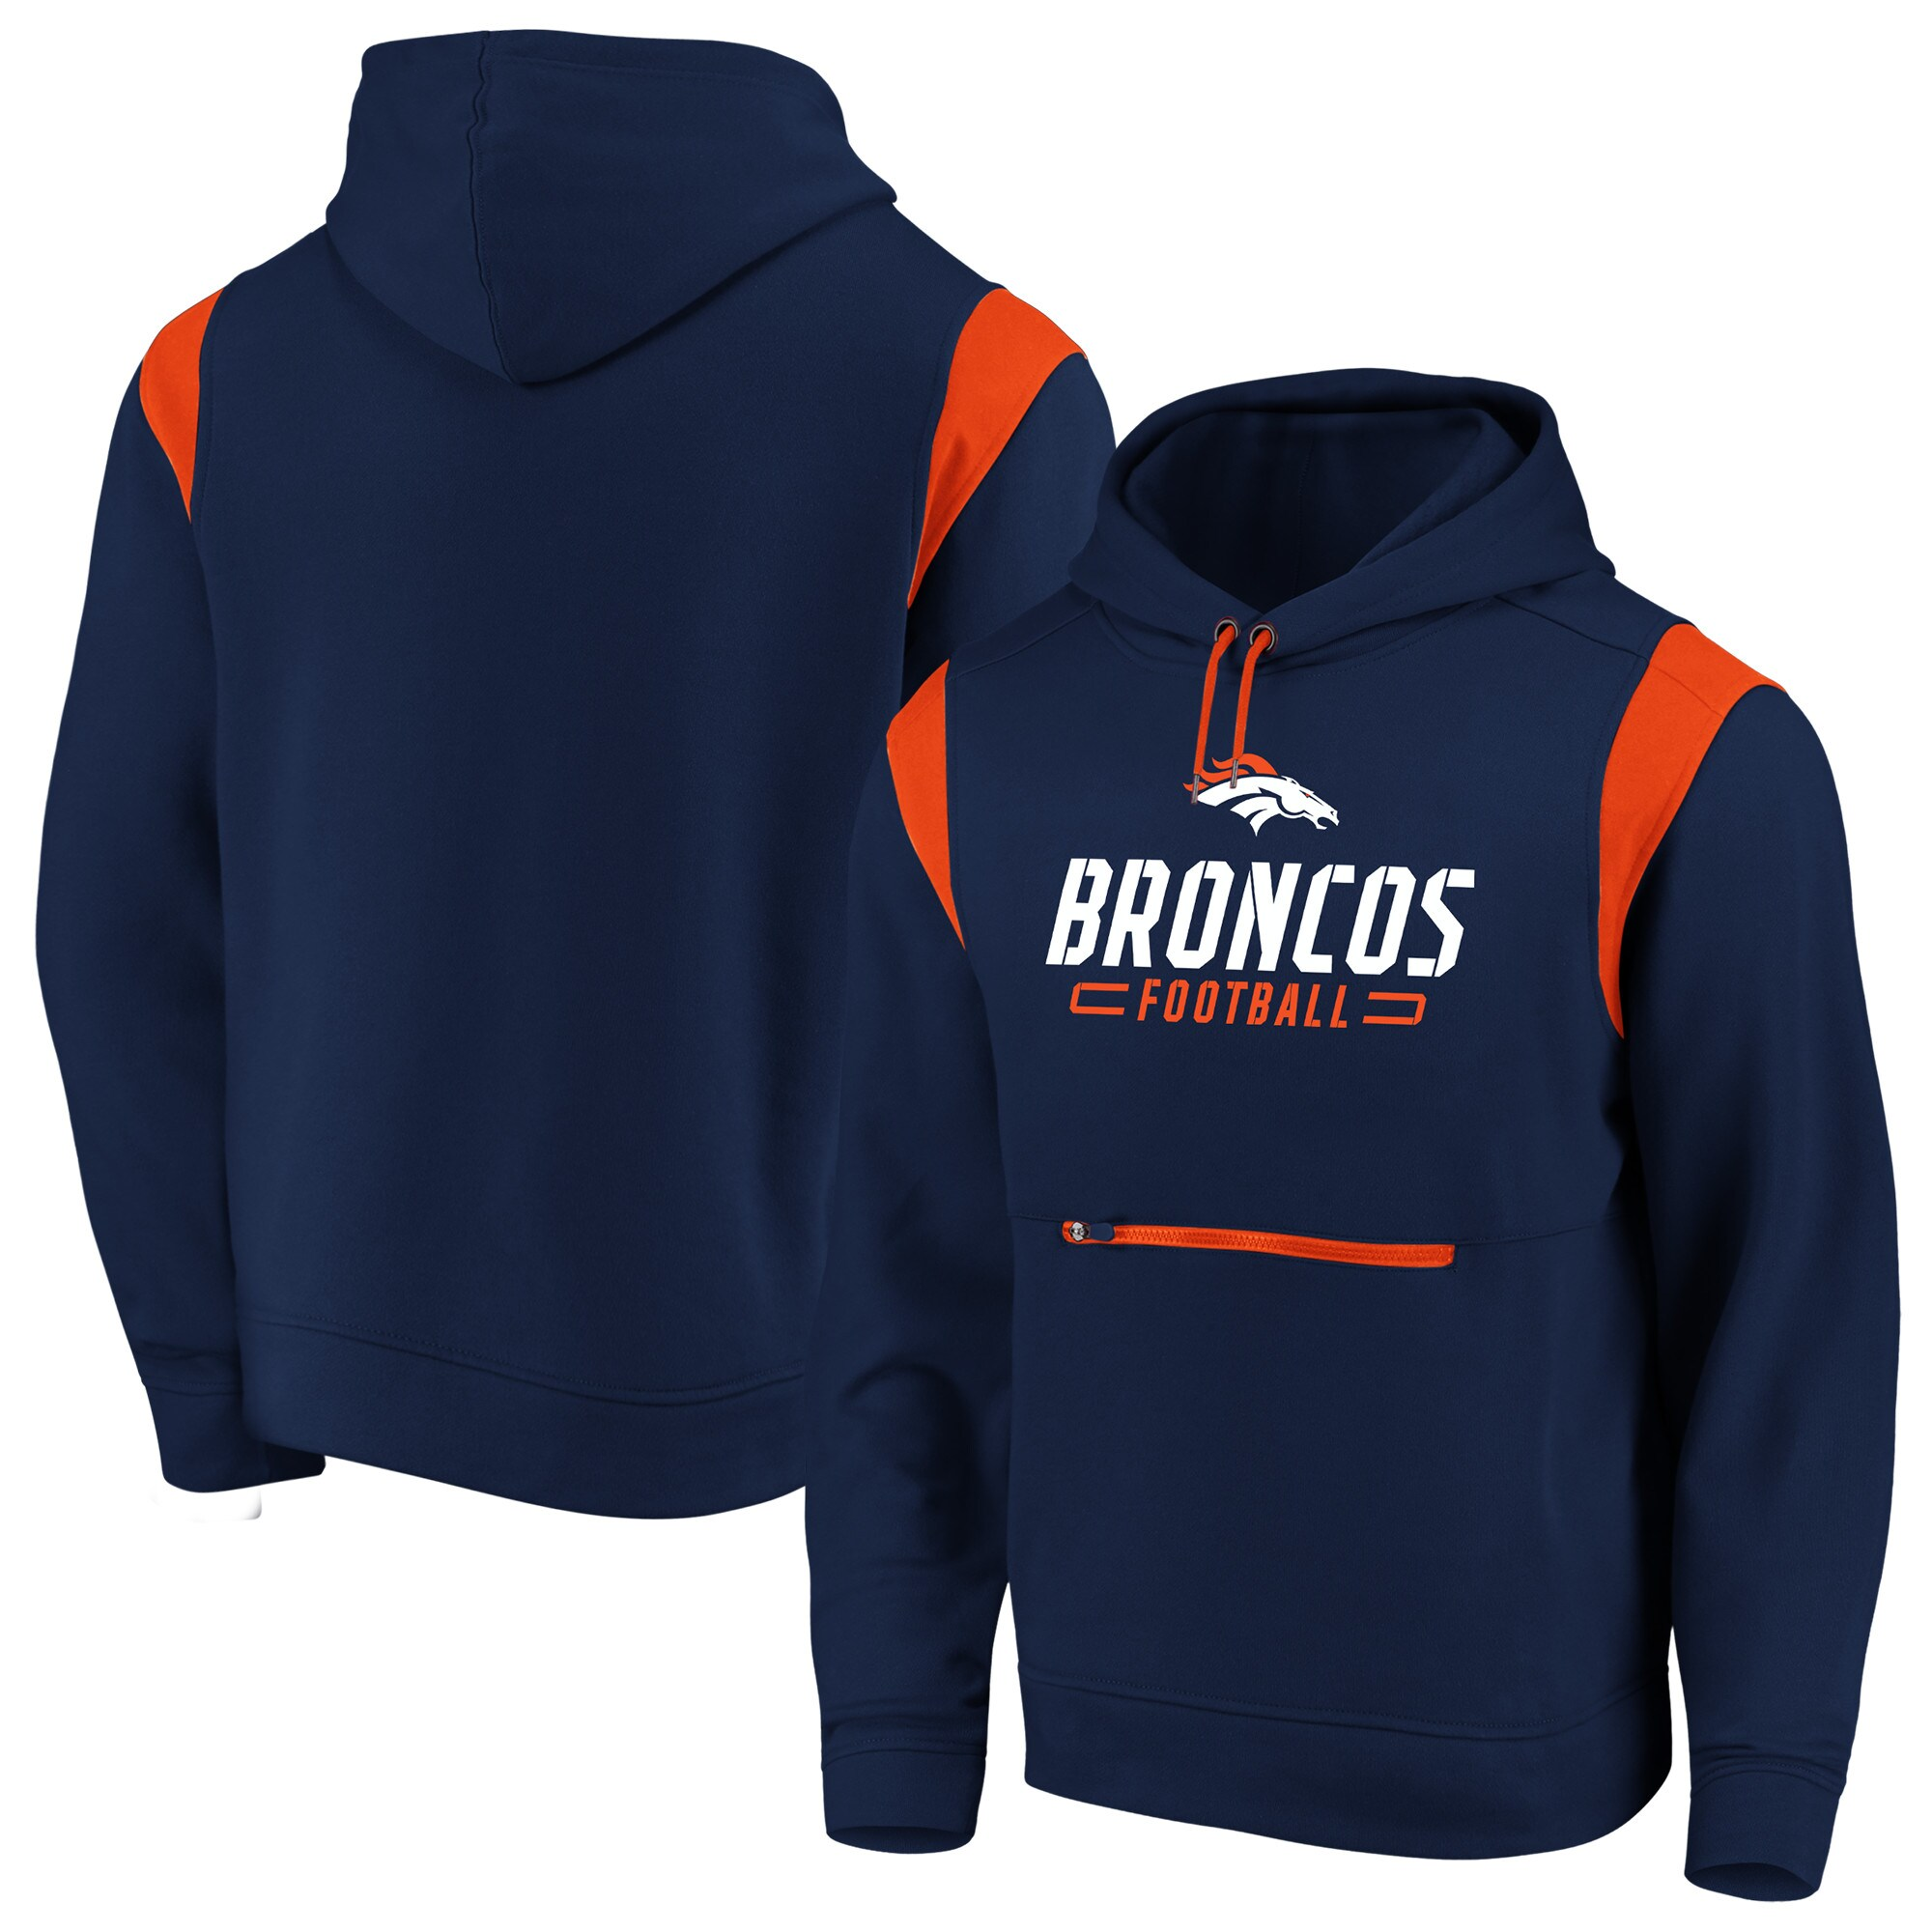 Denver Broncos NFL Pro Line by Fanatics Branded Iconic Overdrive Pullover Hoodie - Navy/Orange